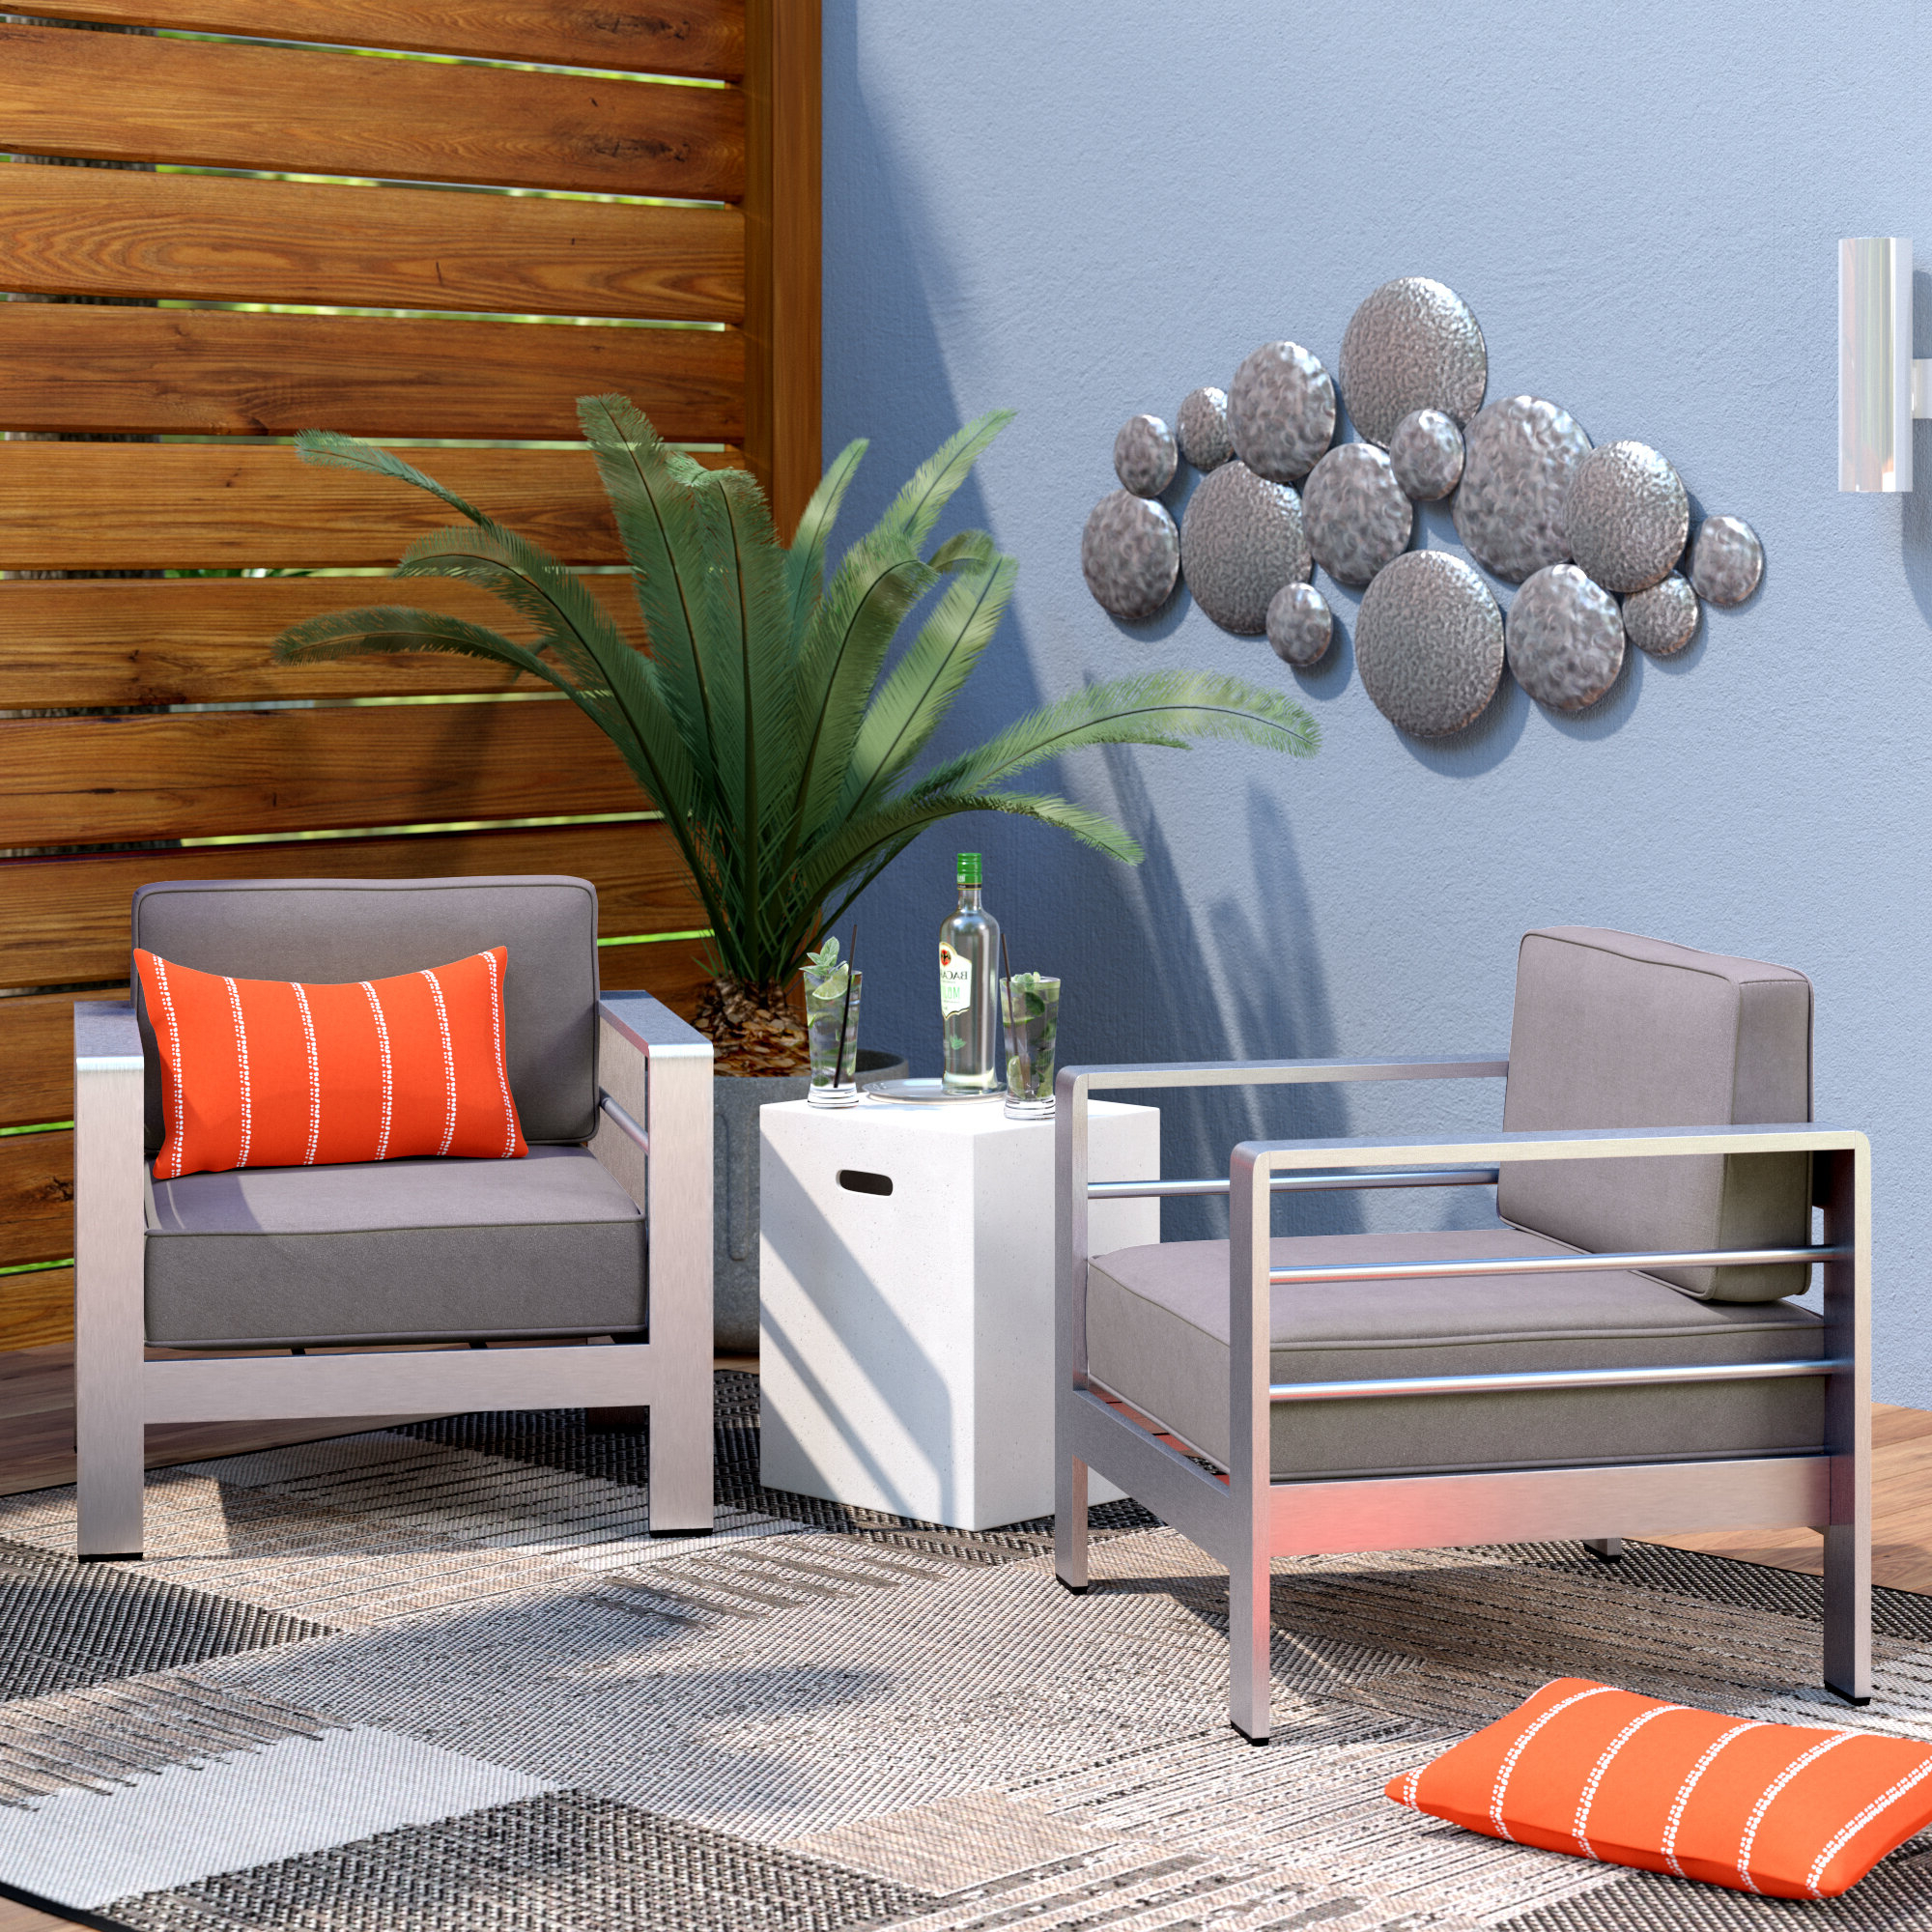 Most Recently Released Details About Brayden Studio Royalston Outdoor Aluminum Arm Chair With  Cushion Set Of 2 Intended For Royalston Patio Sofas With Cushions (View 10 of 20)